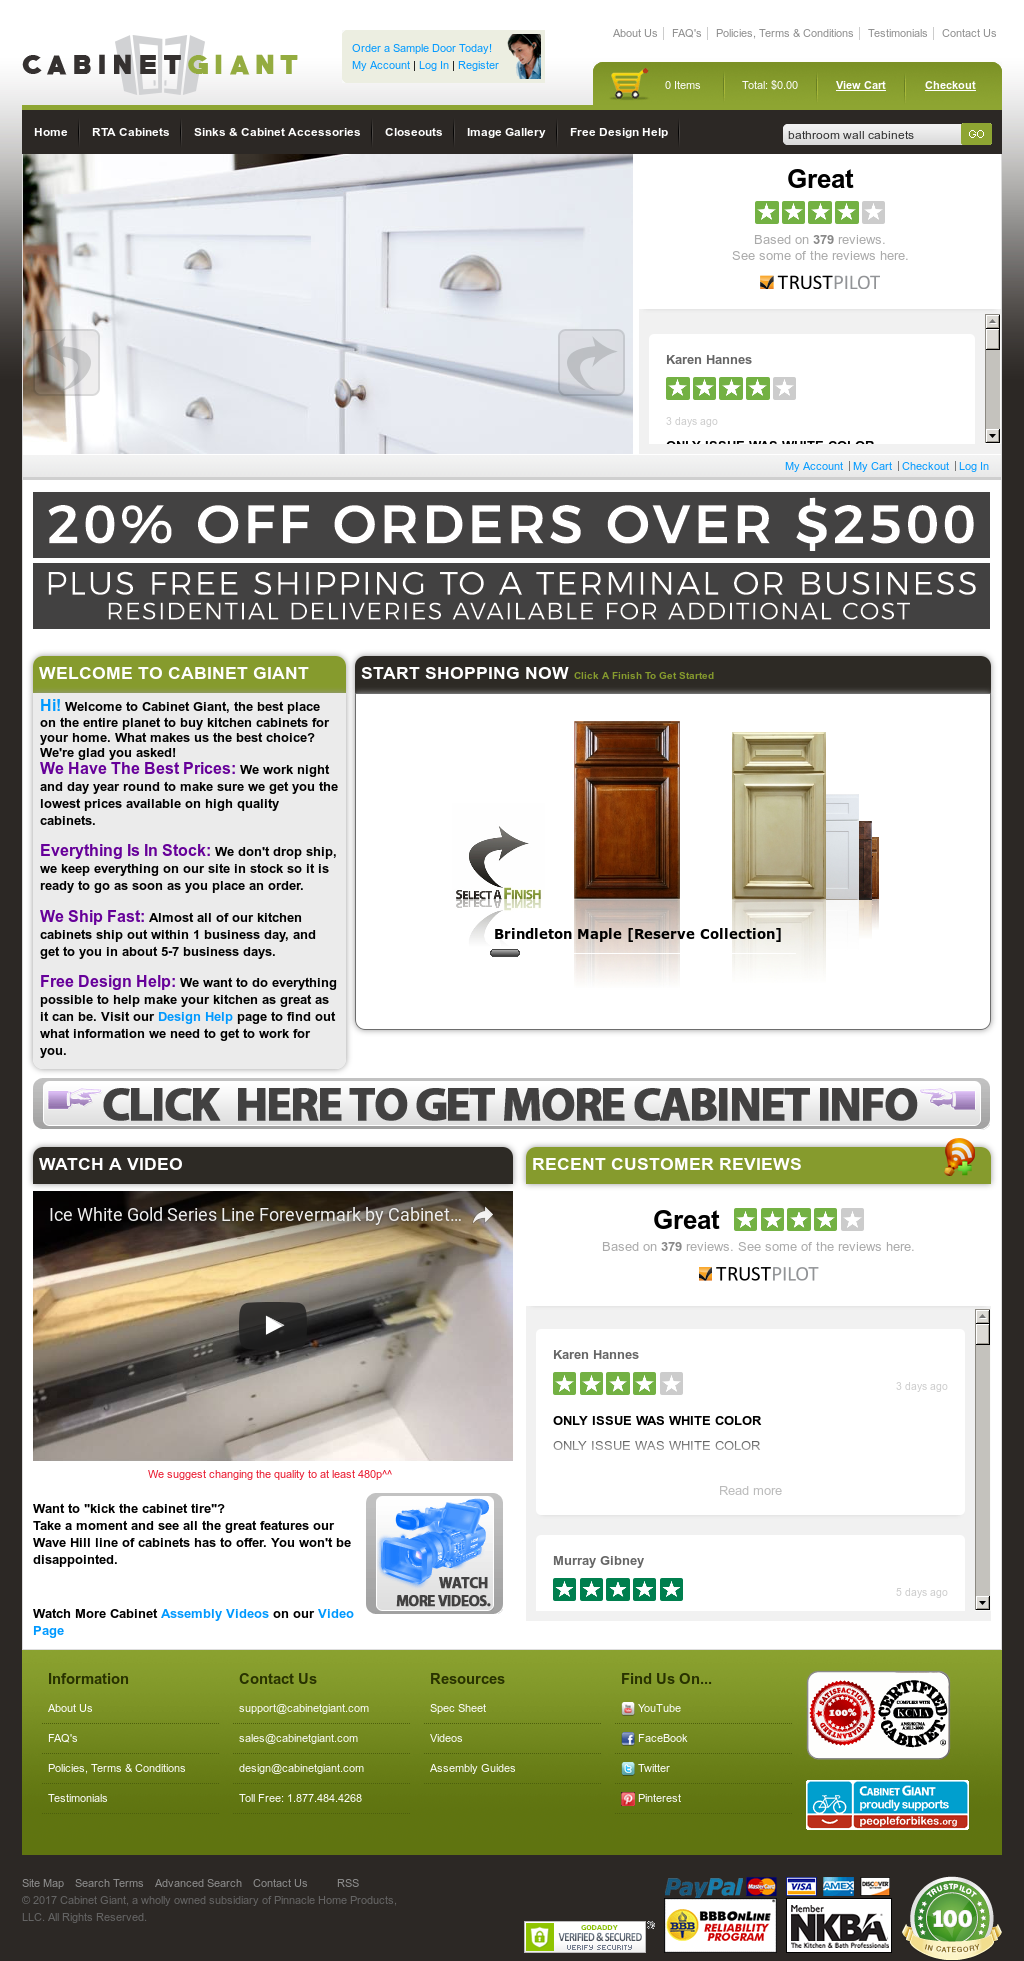 Cabinet Giant Website History